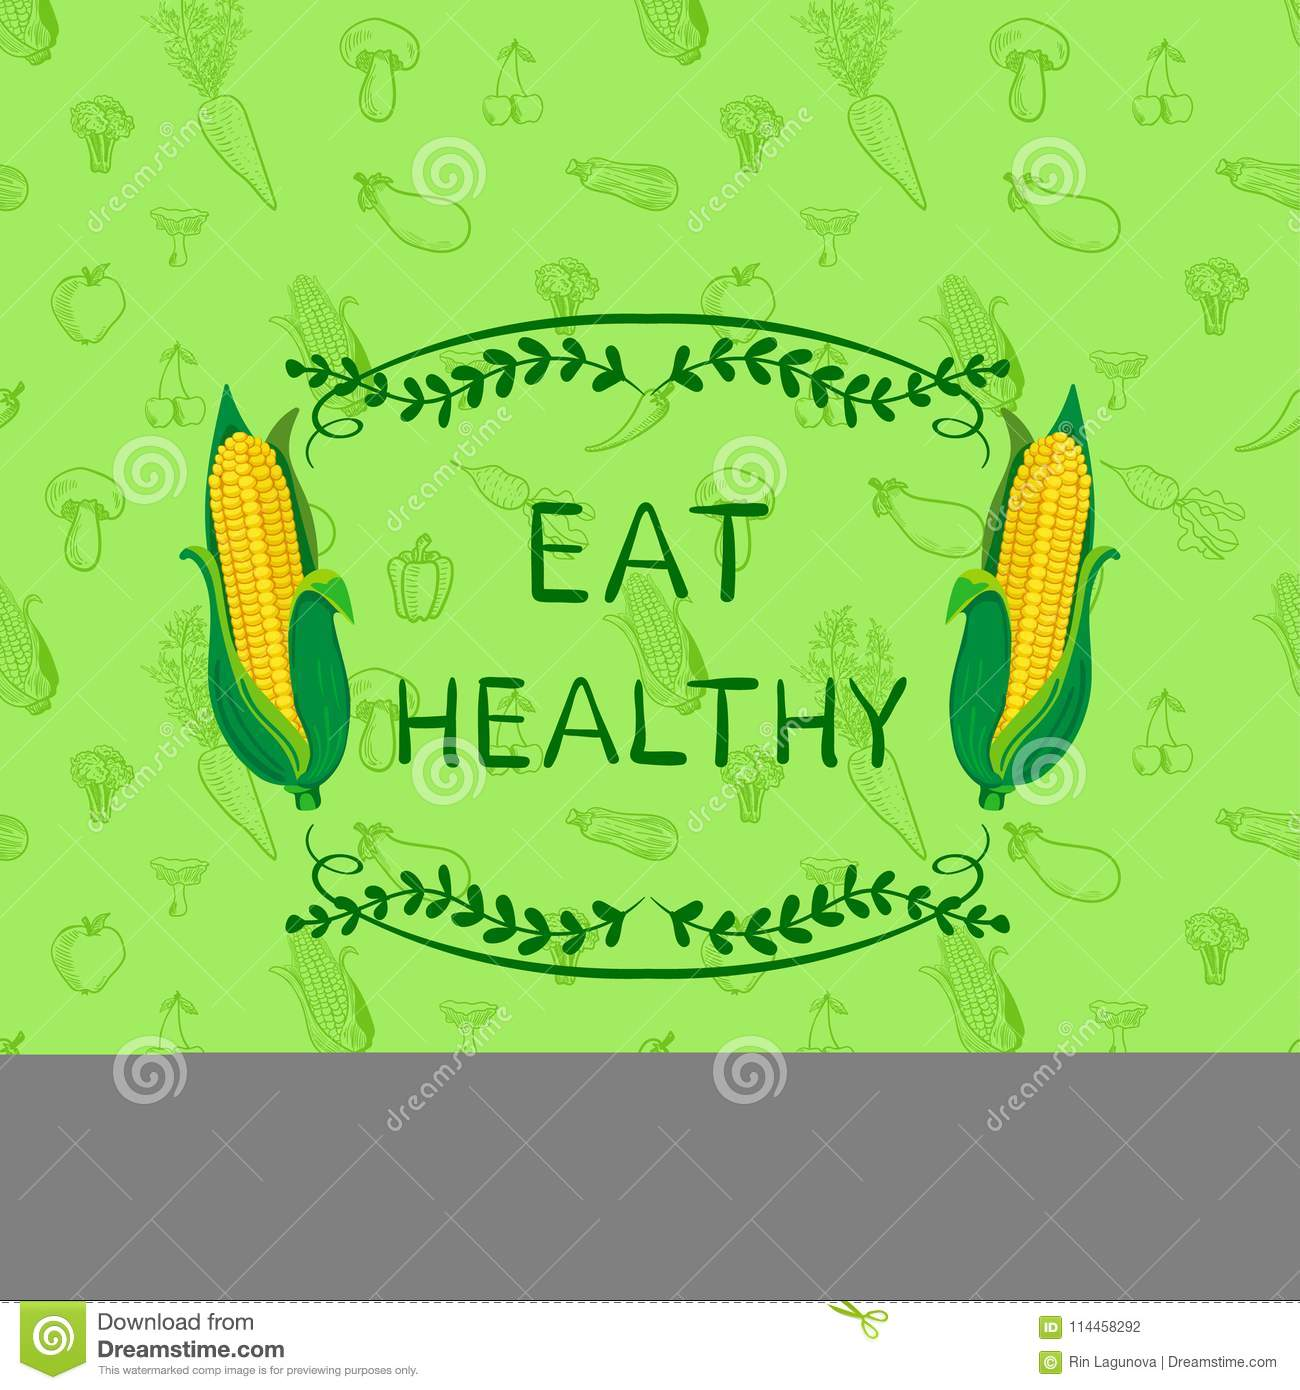 Healthy Eating Vector Motivational Poster Design Template Doodle